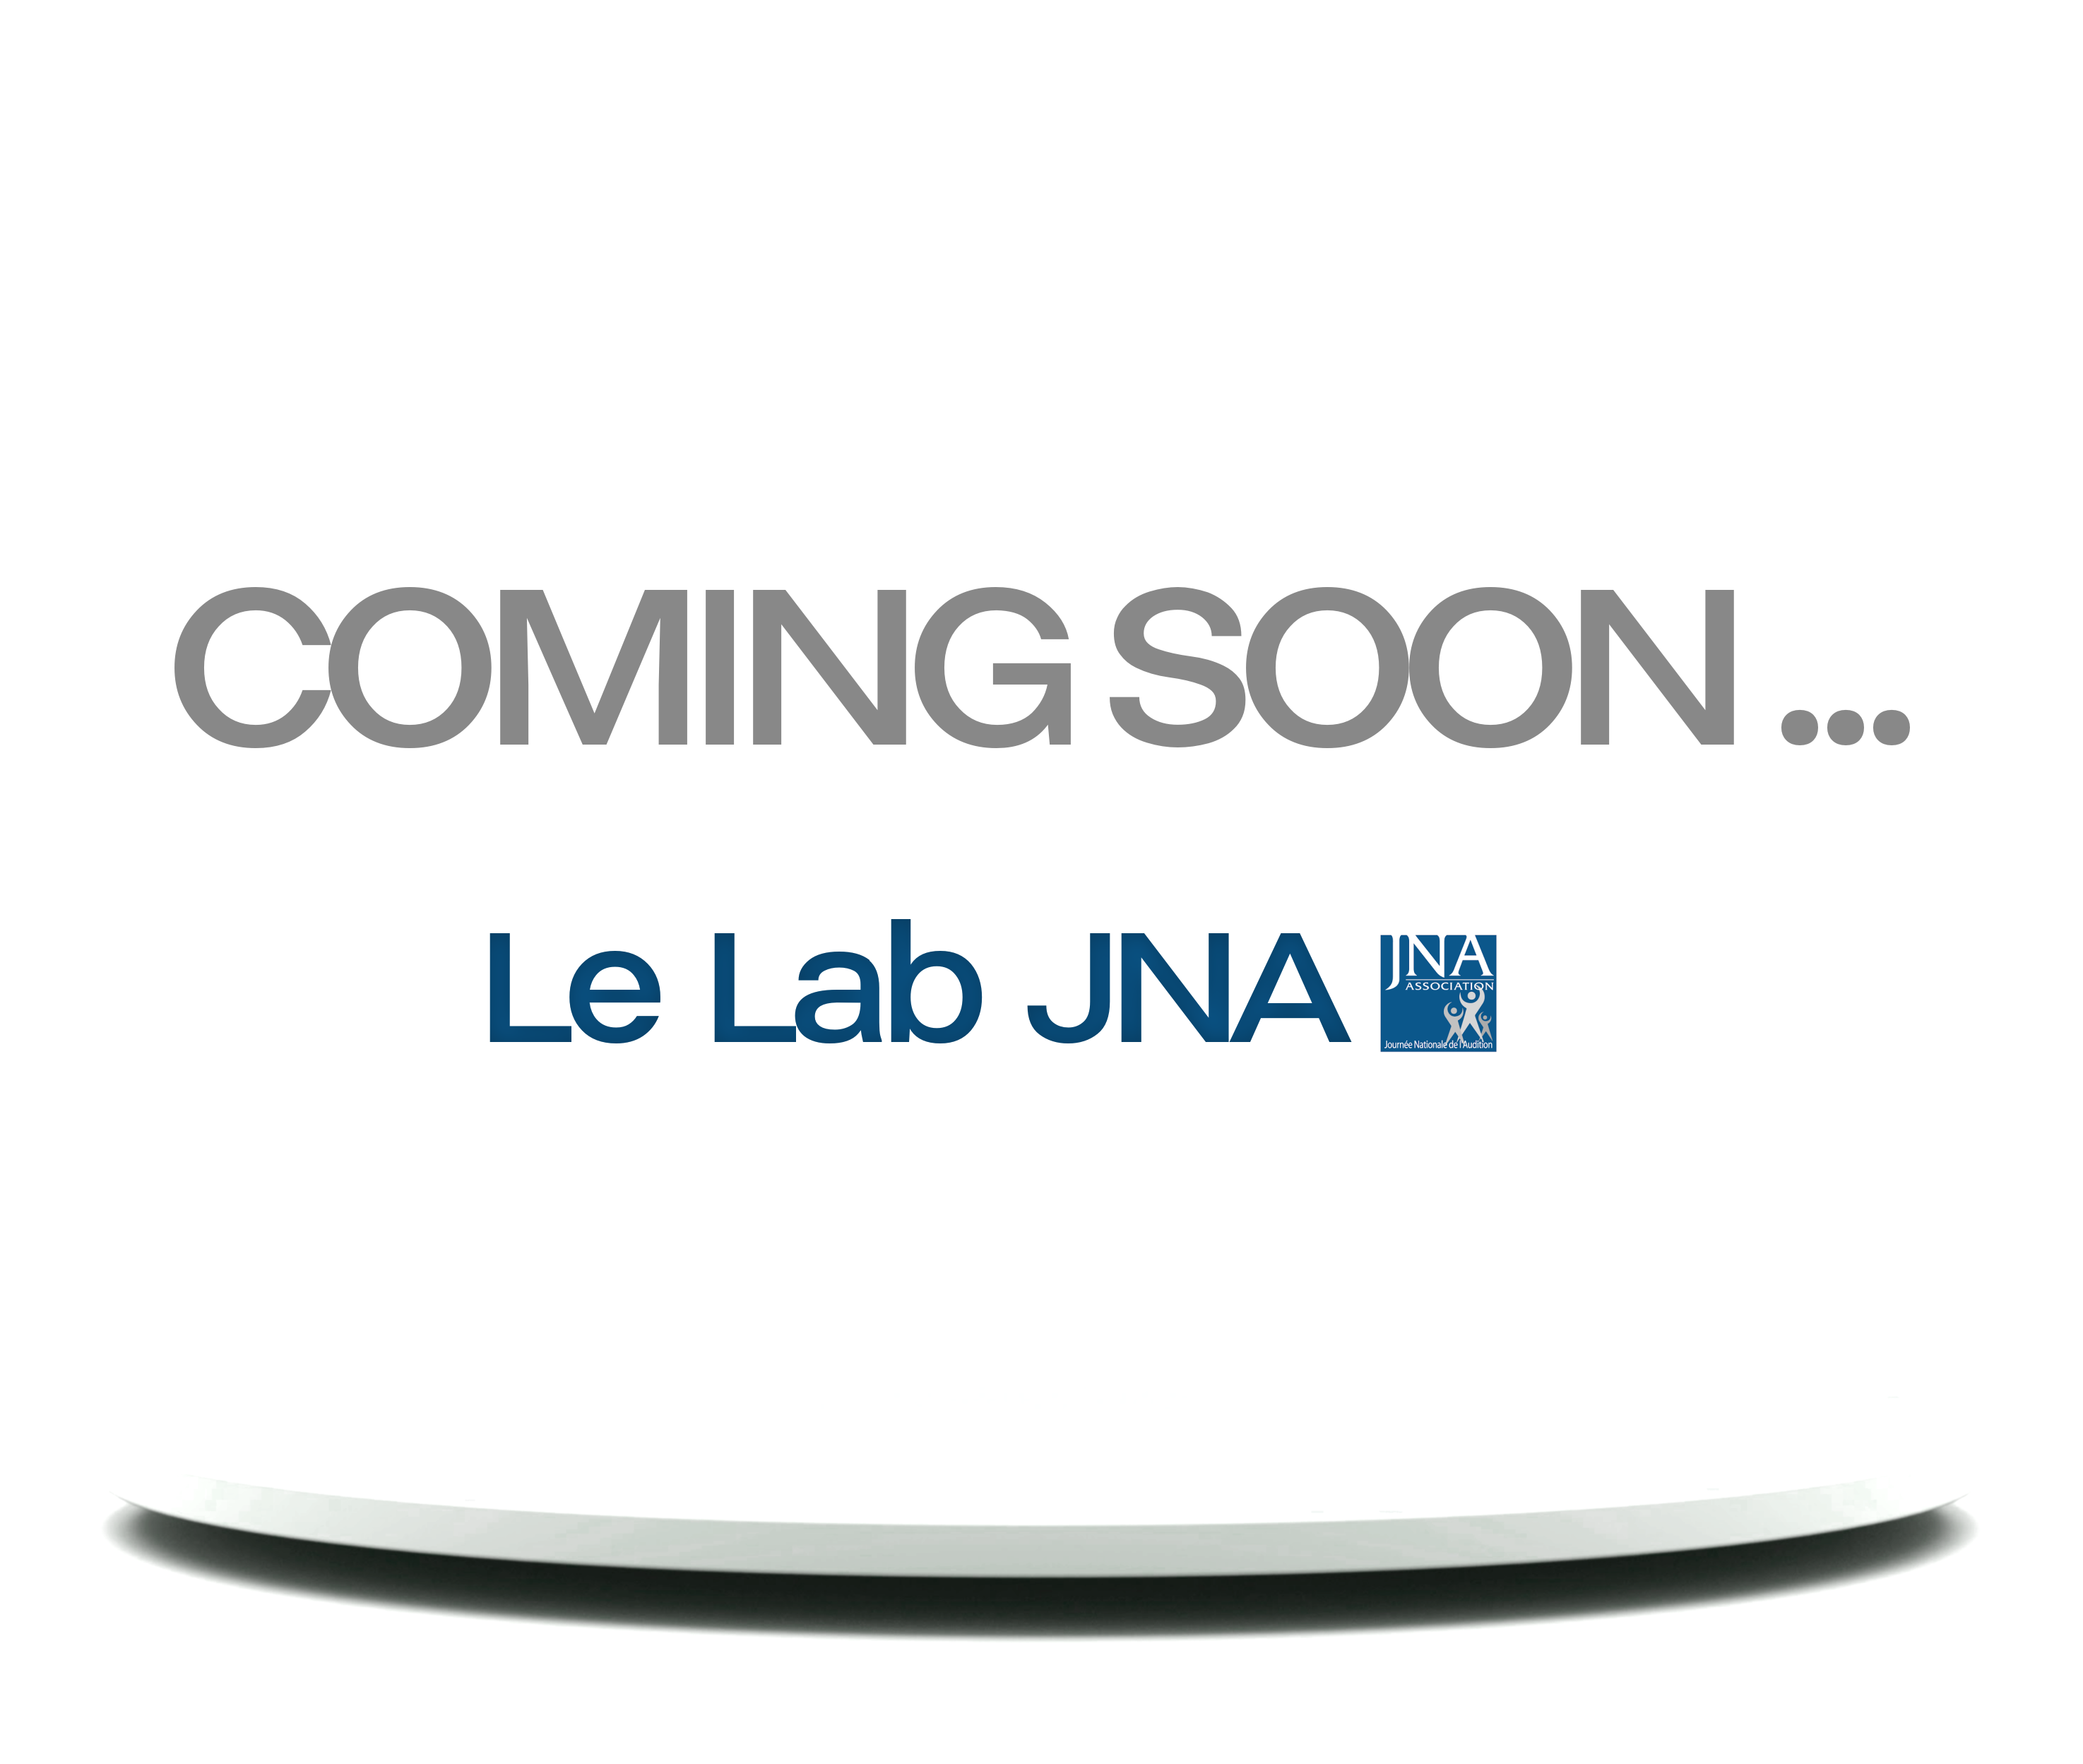 JNA Lab Comming soon